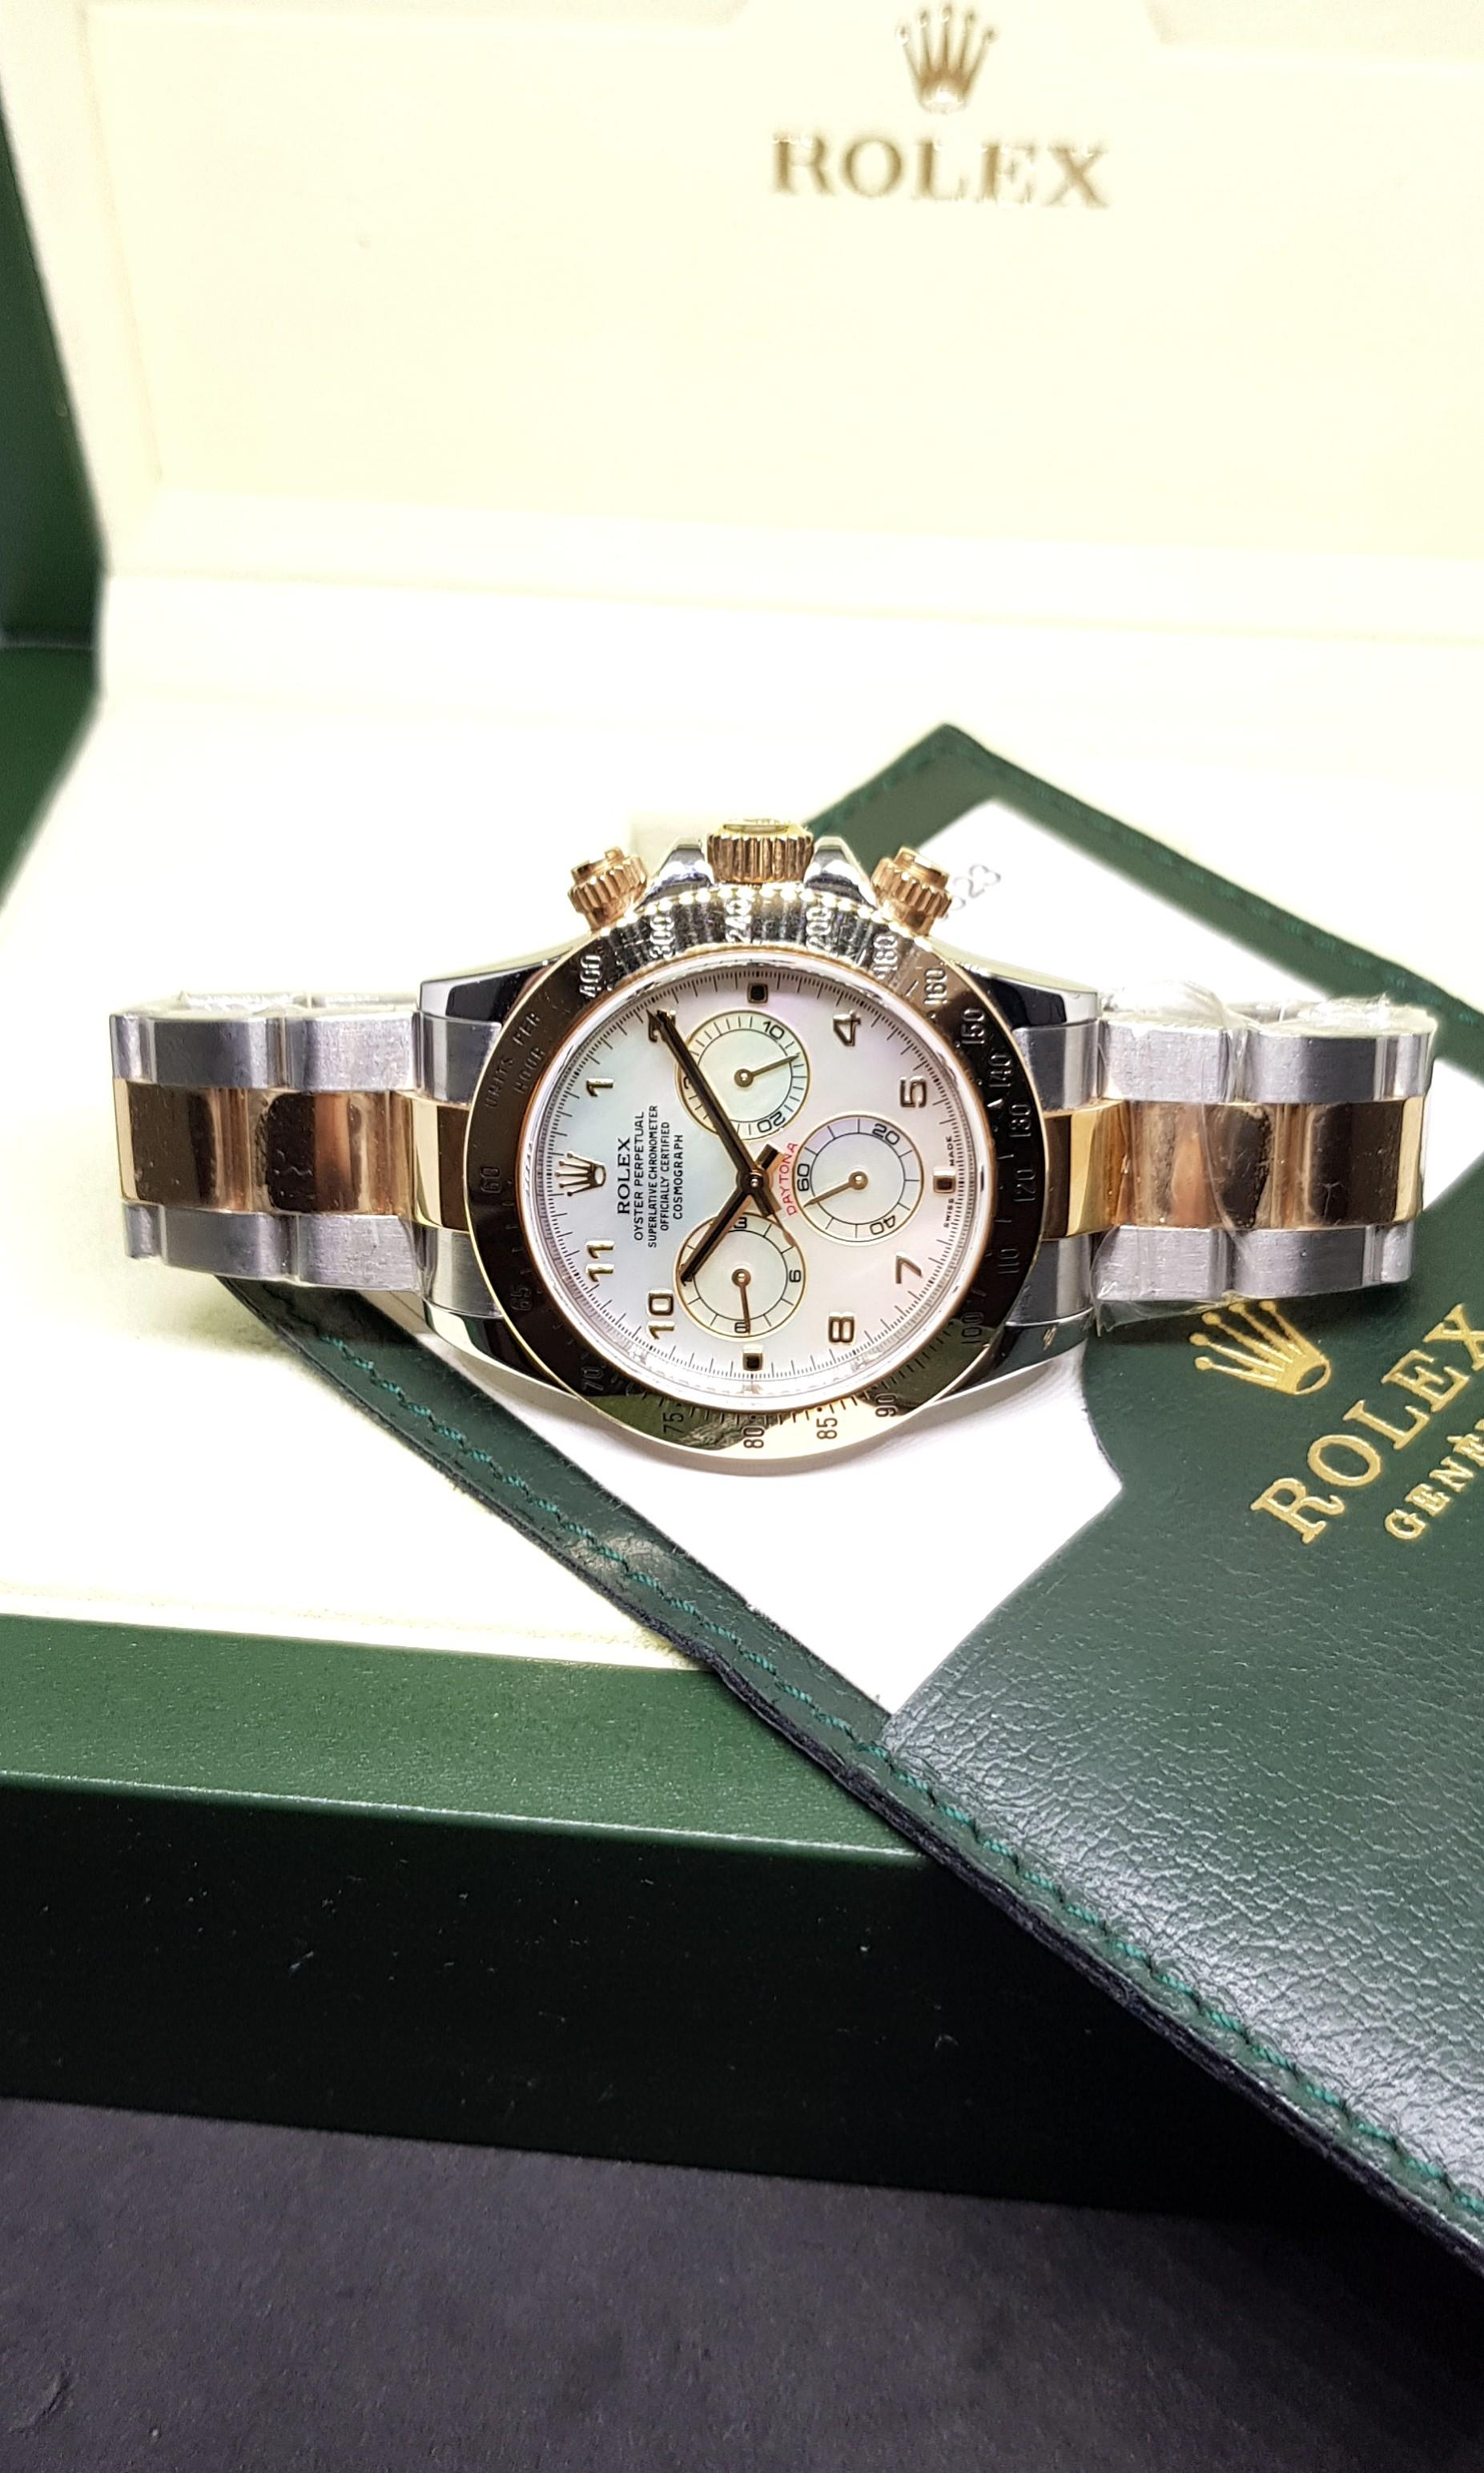 (NOT AVAILABLE) Rolex Oyster Perpetual Cosmograph Daytona in White MOP Dial